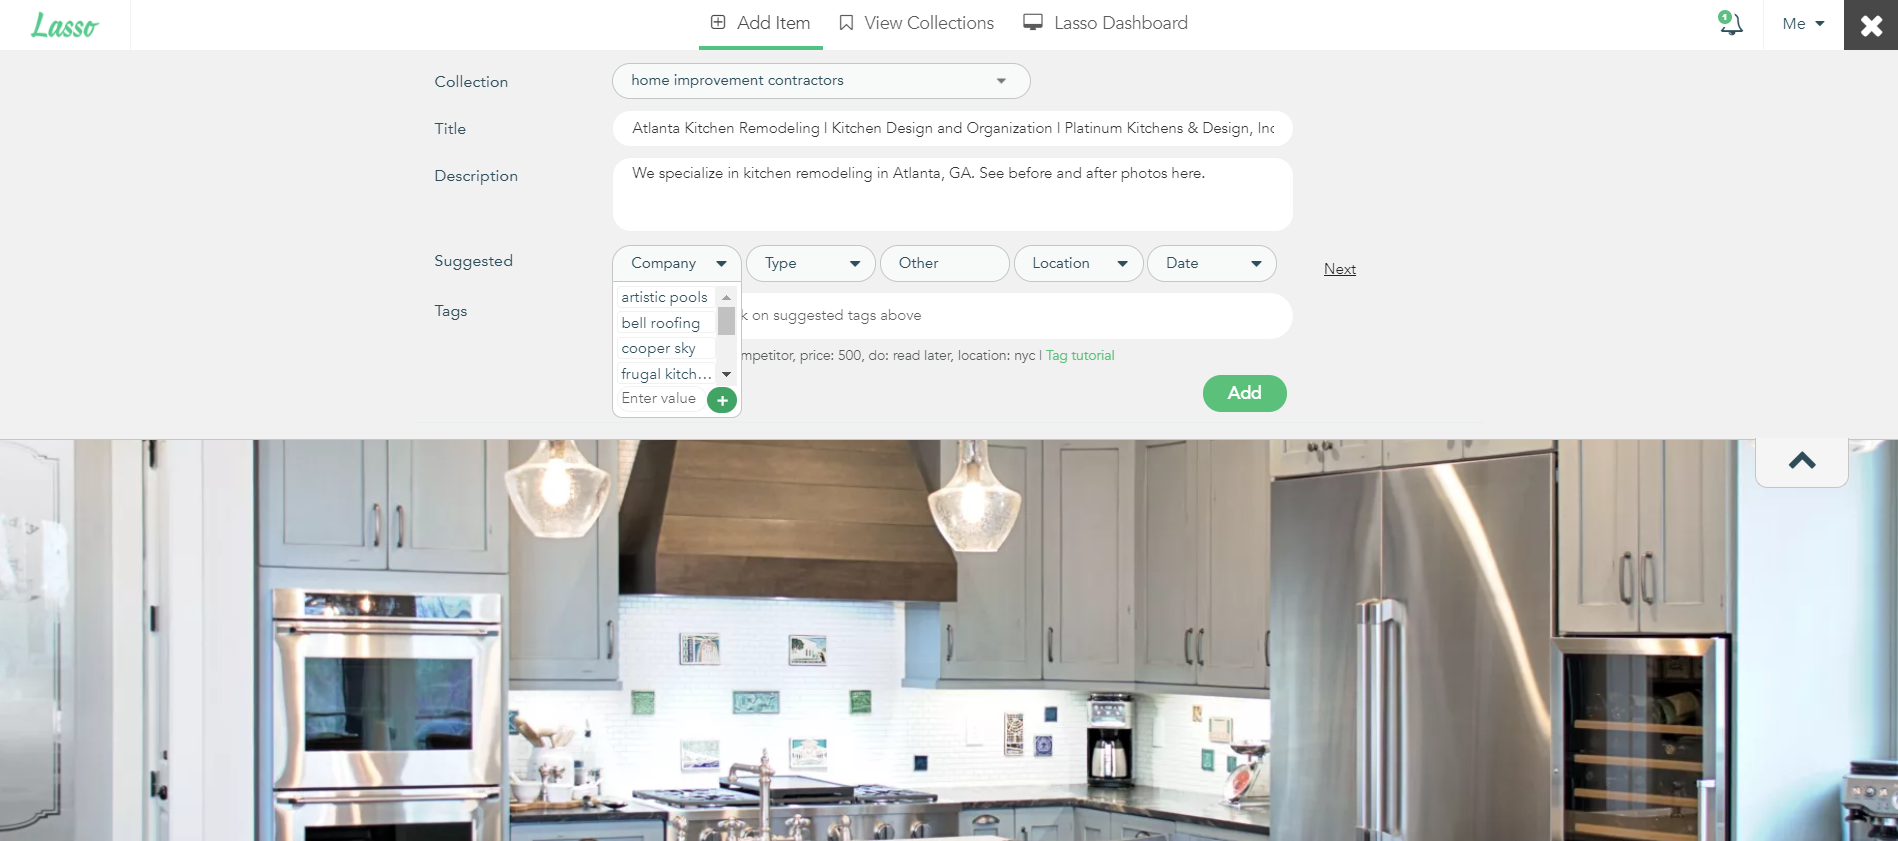 Easily organize save items by using suggested tags or those previously entered